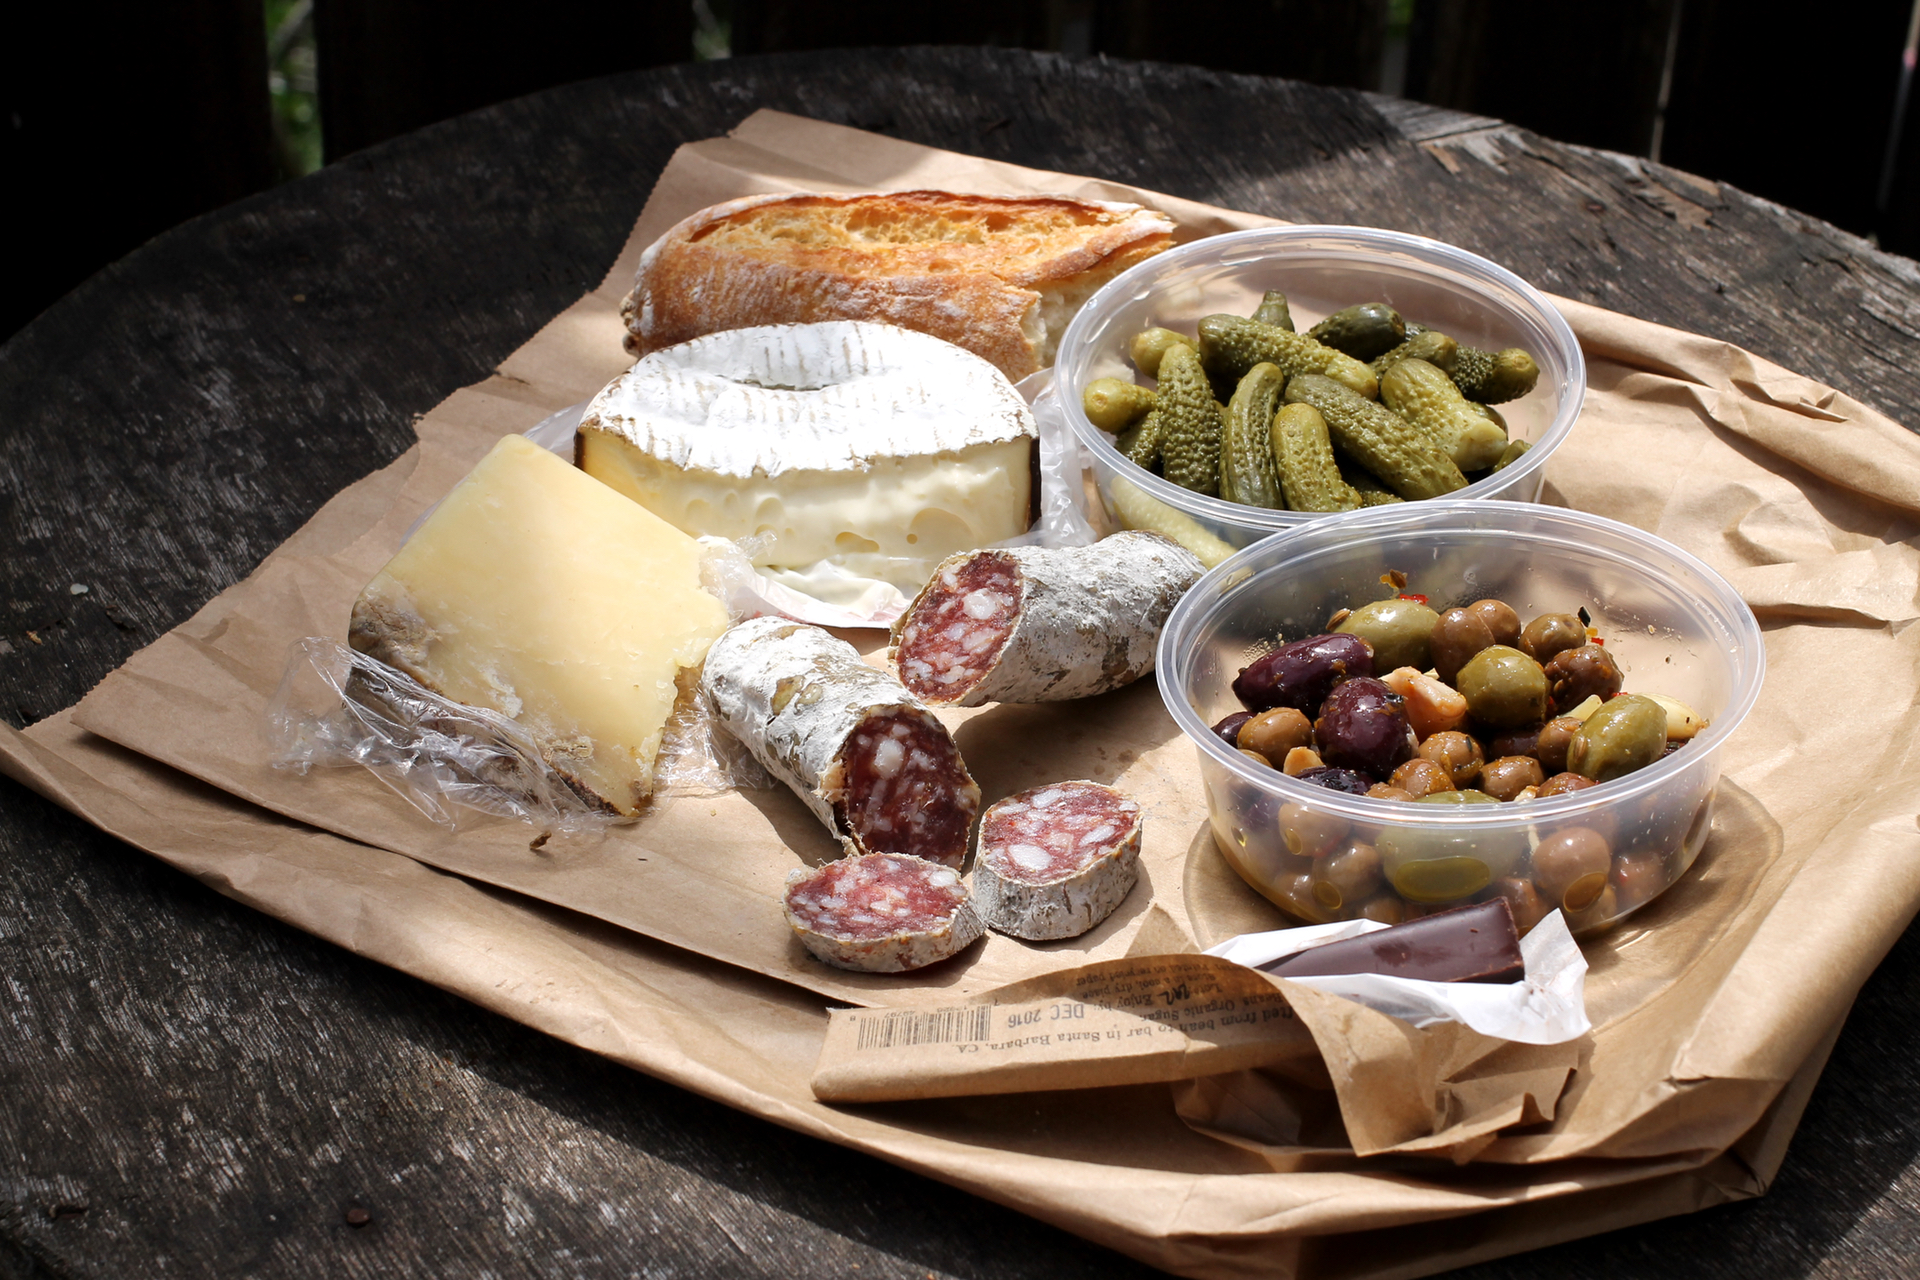 A picnic spread from Market Hall's Pasta Shop.